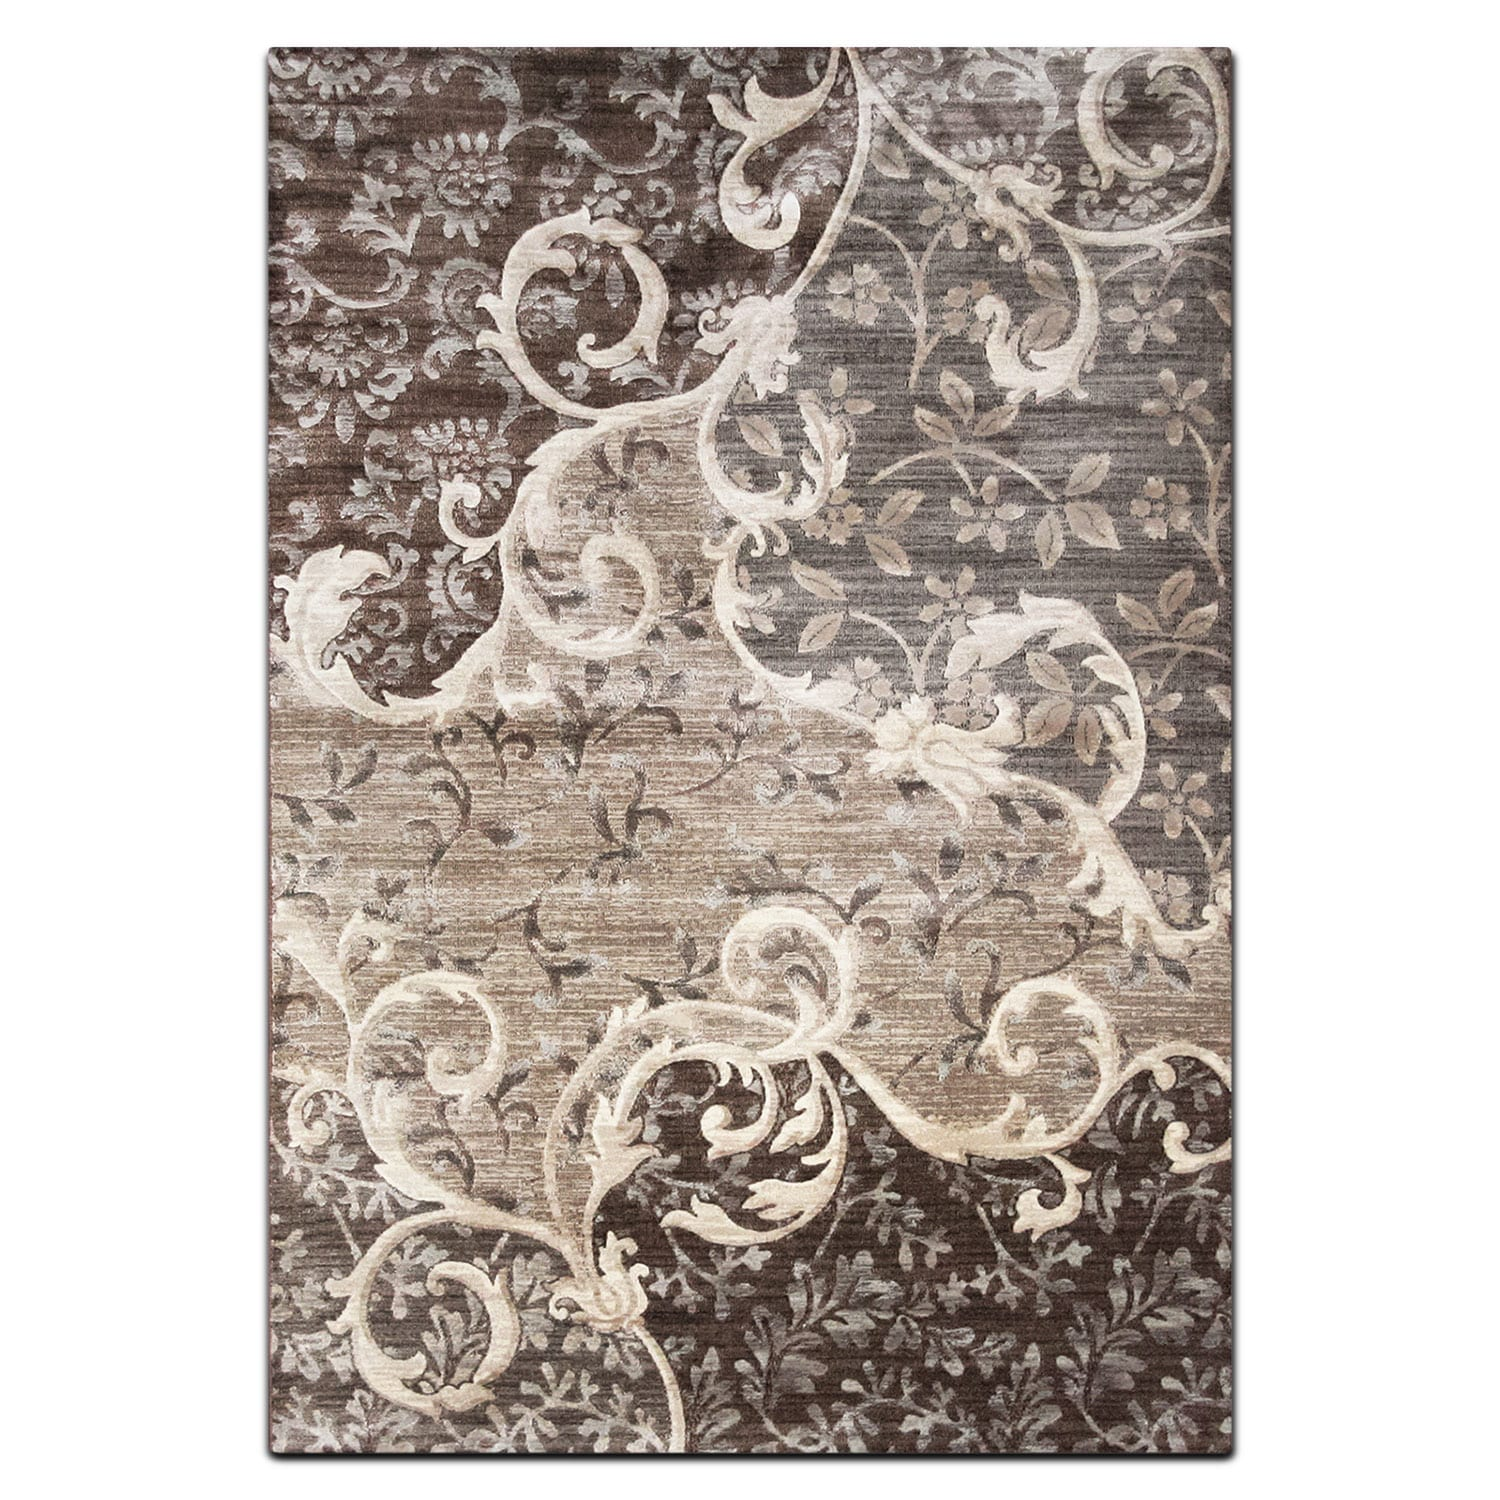 Rugs - Sonoma 8' x 10' Area Rug - Chocolate and Gray